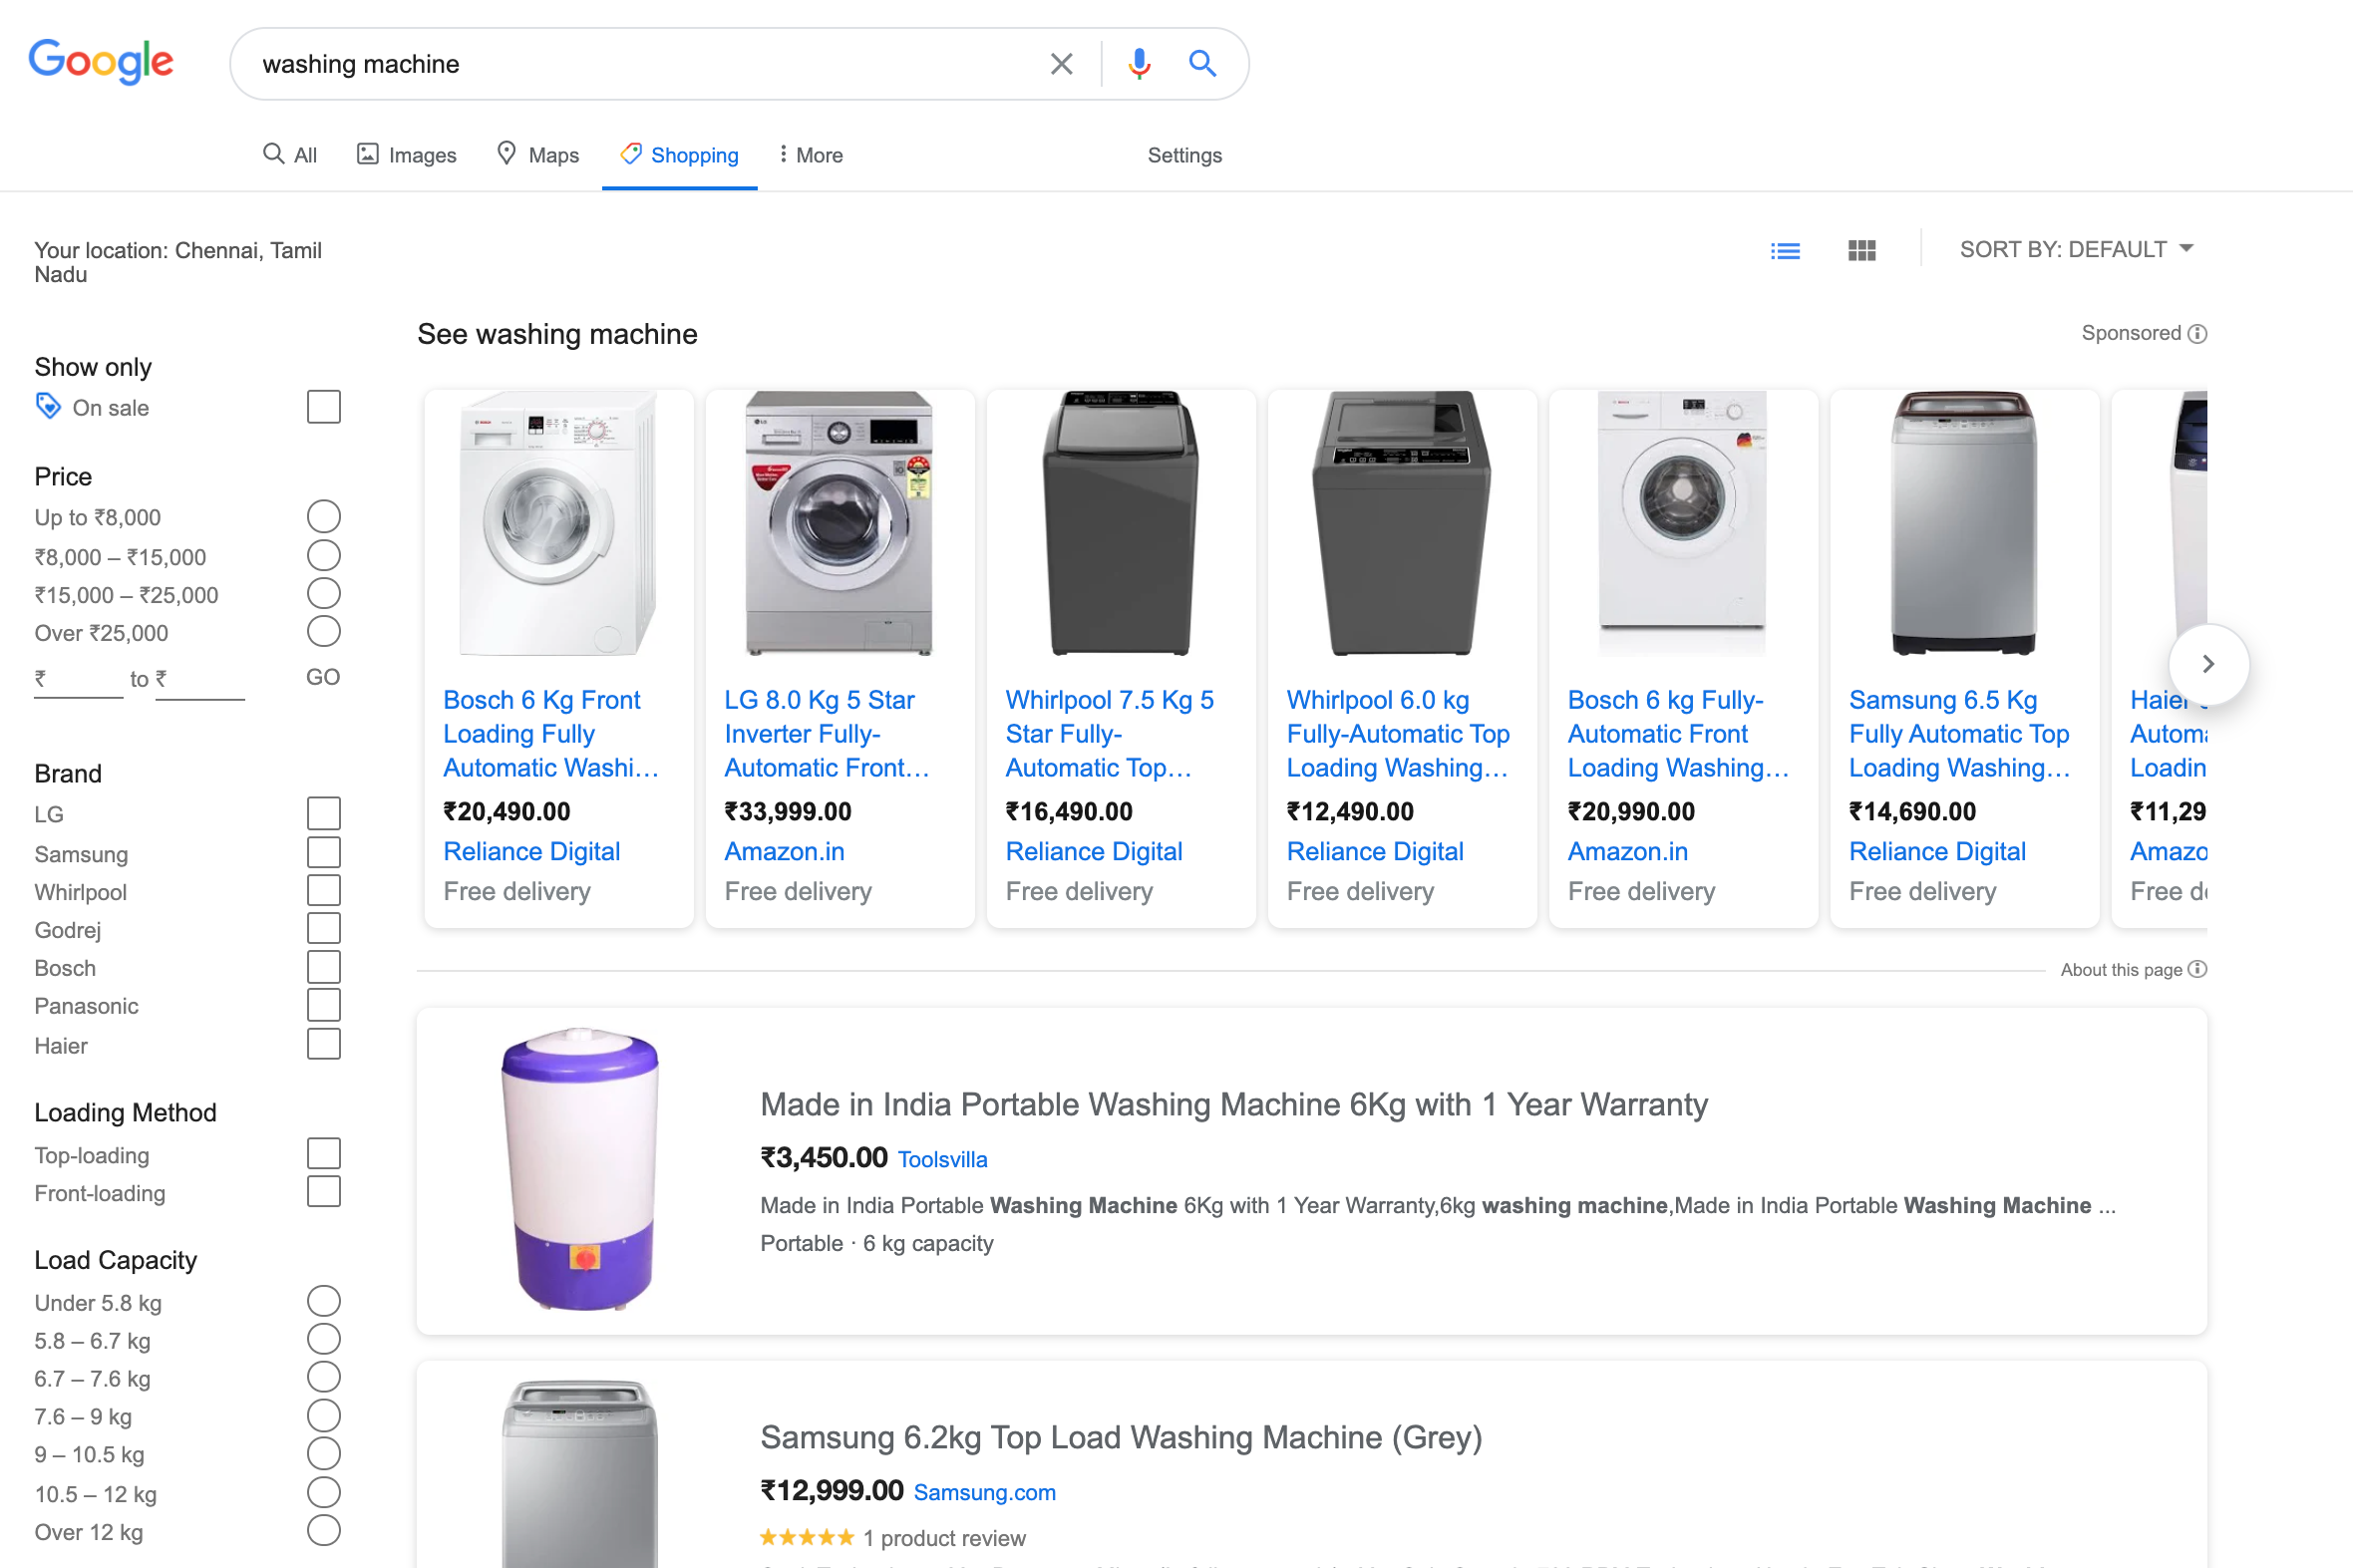 Products for washing machine on google shopping